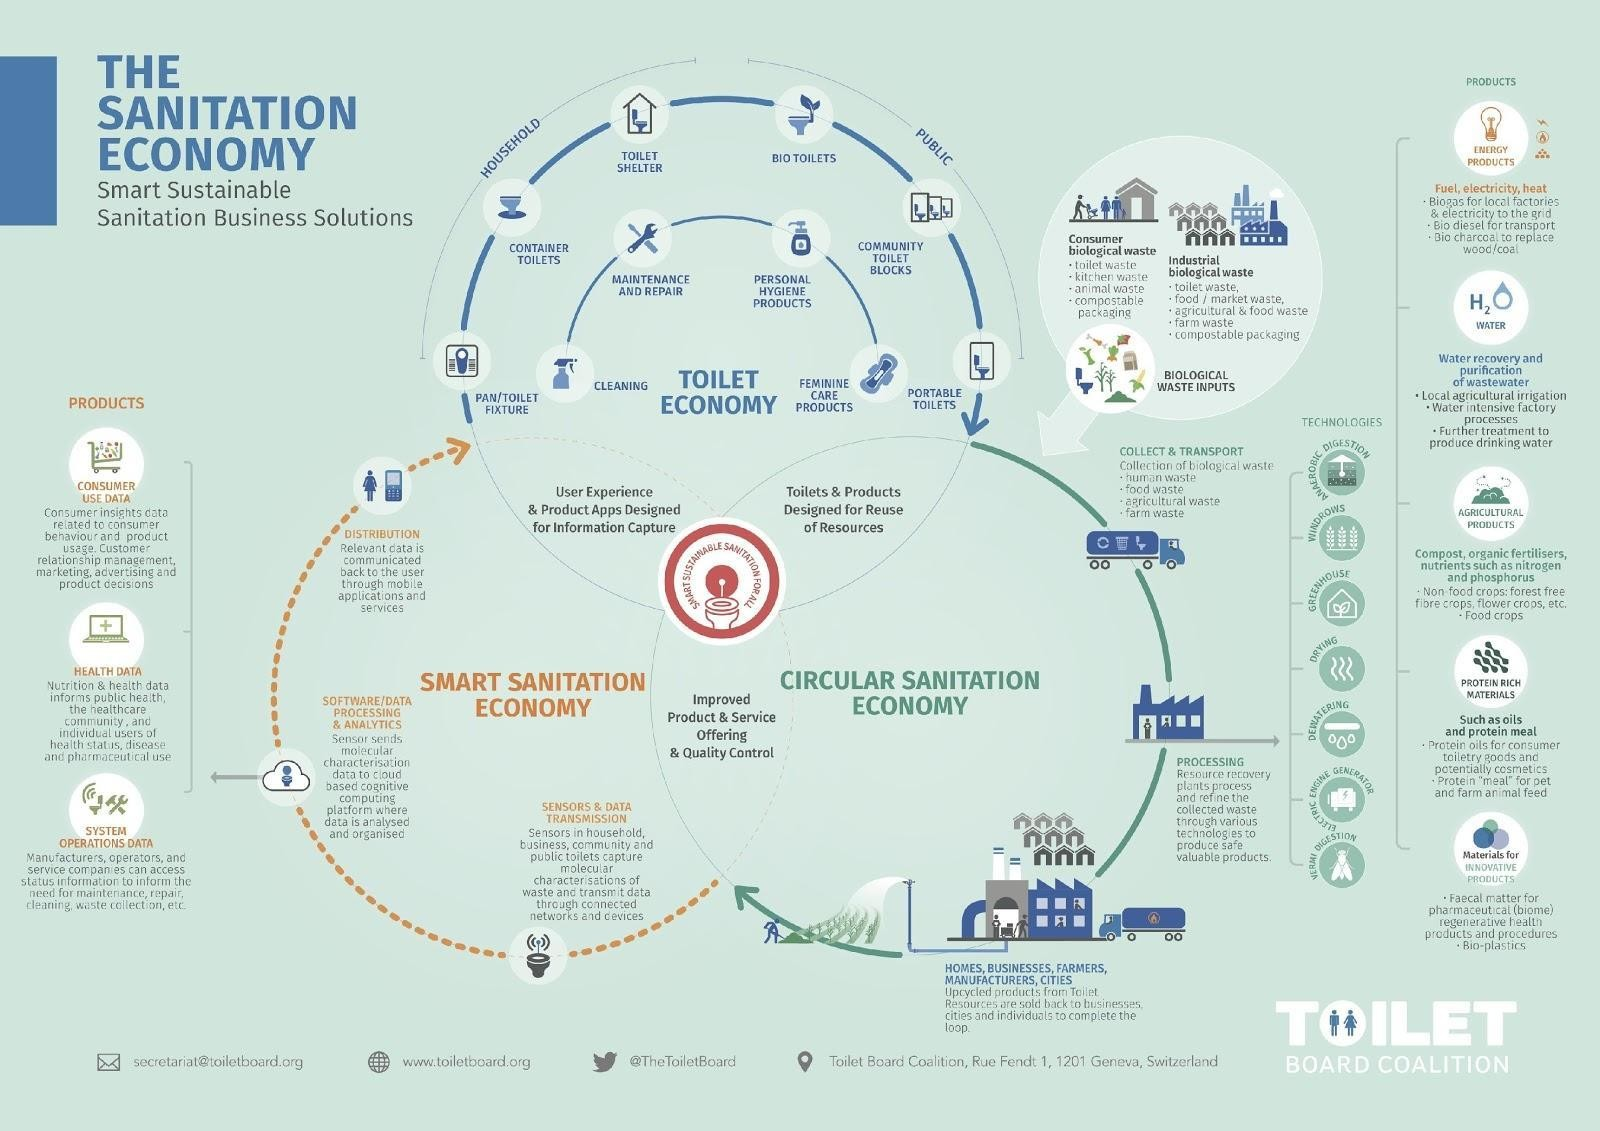 An infographic representing the sanitation economy.